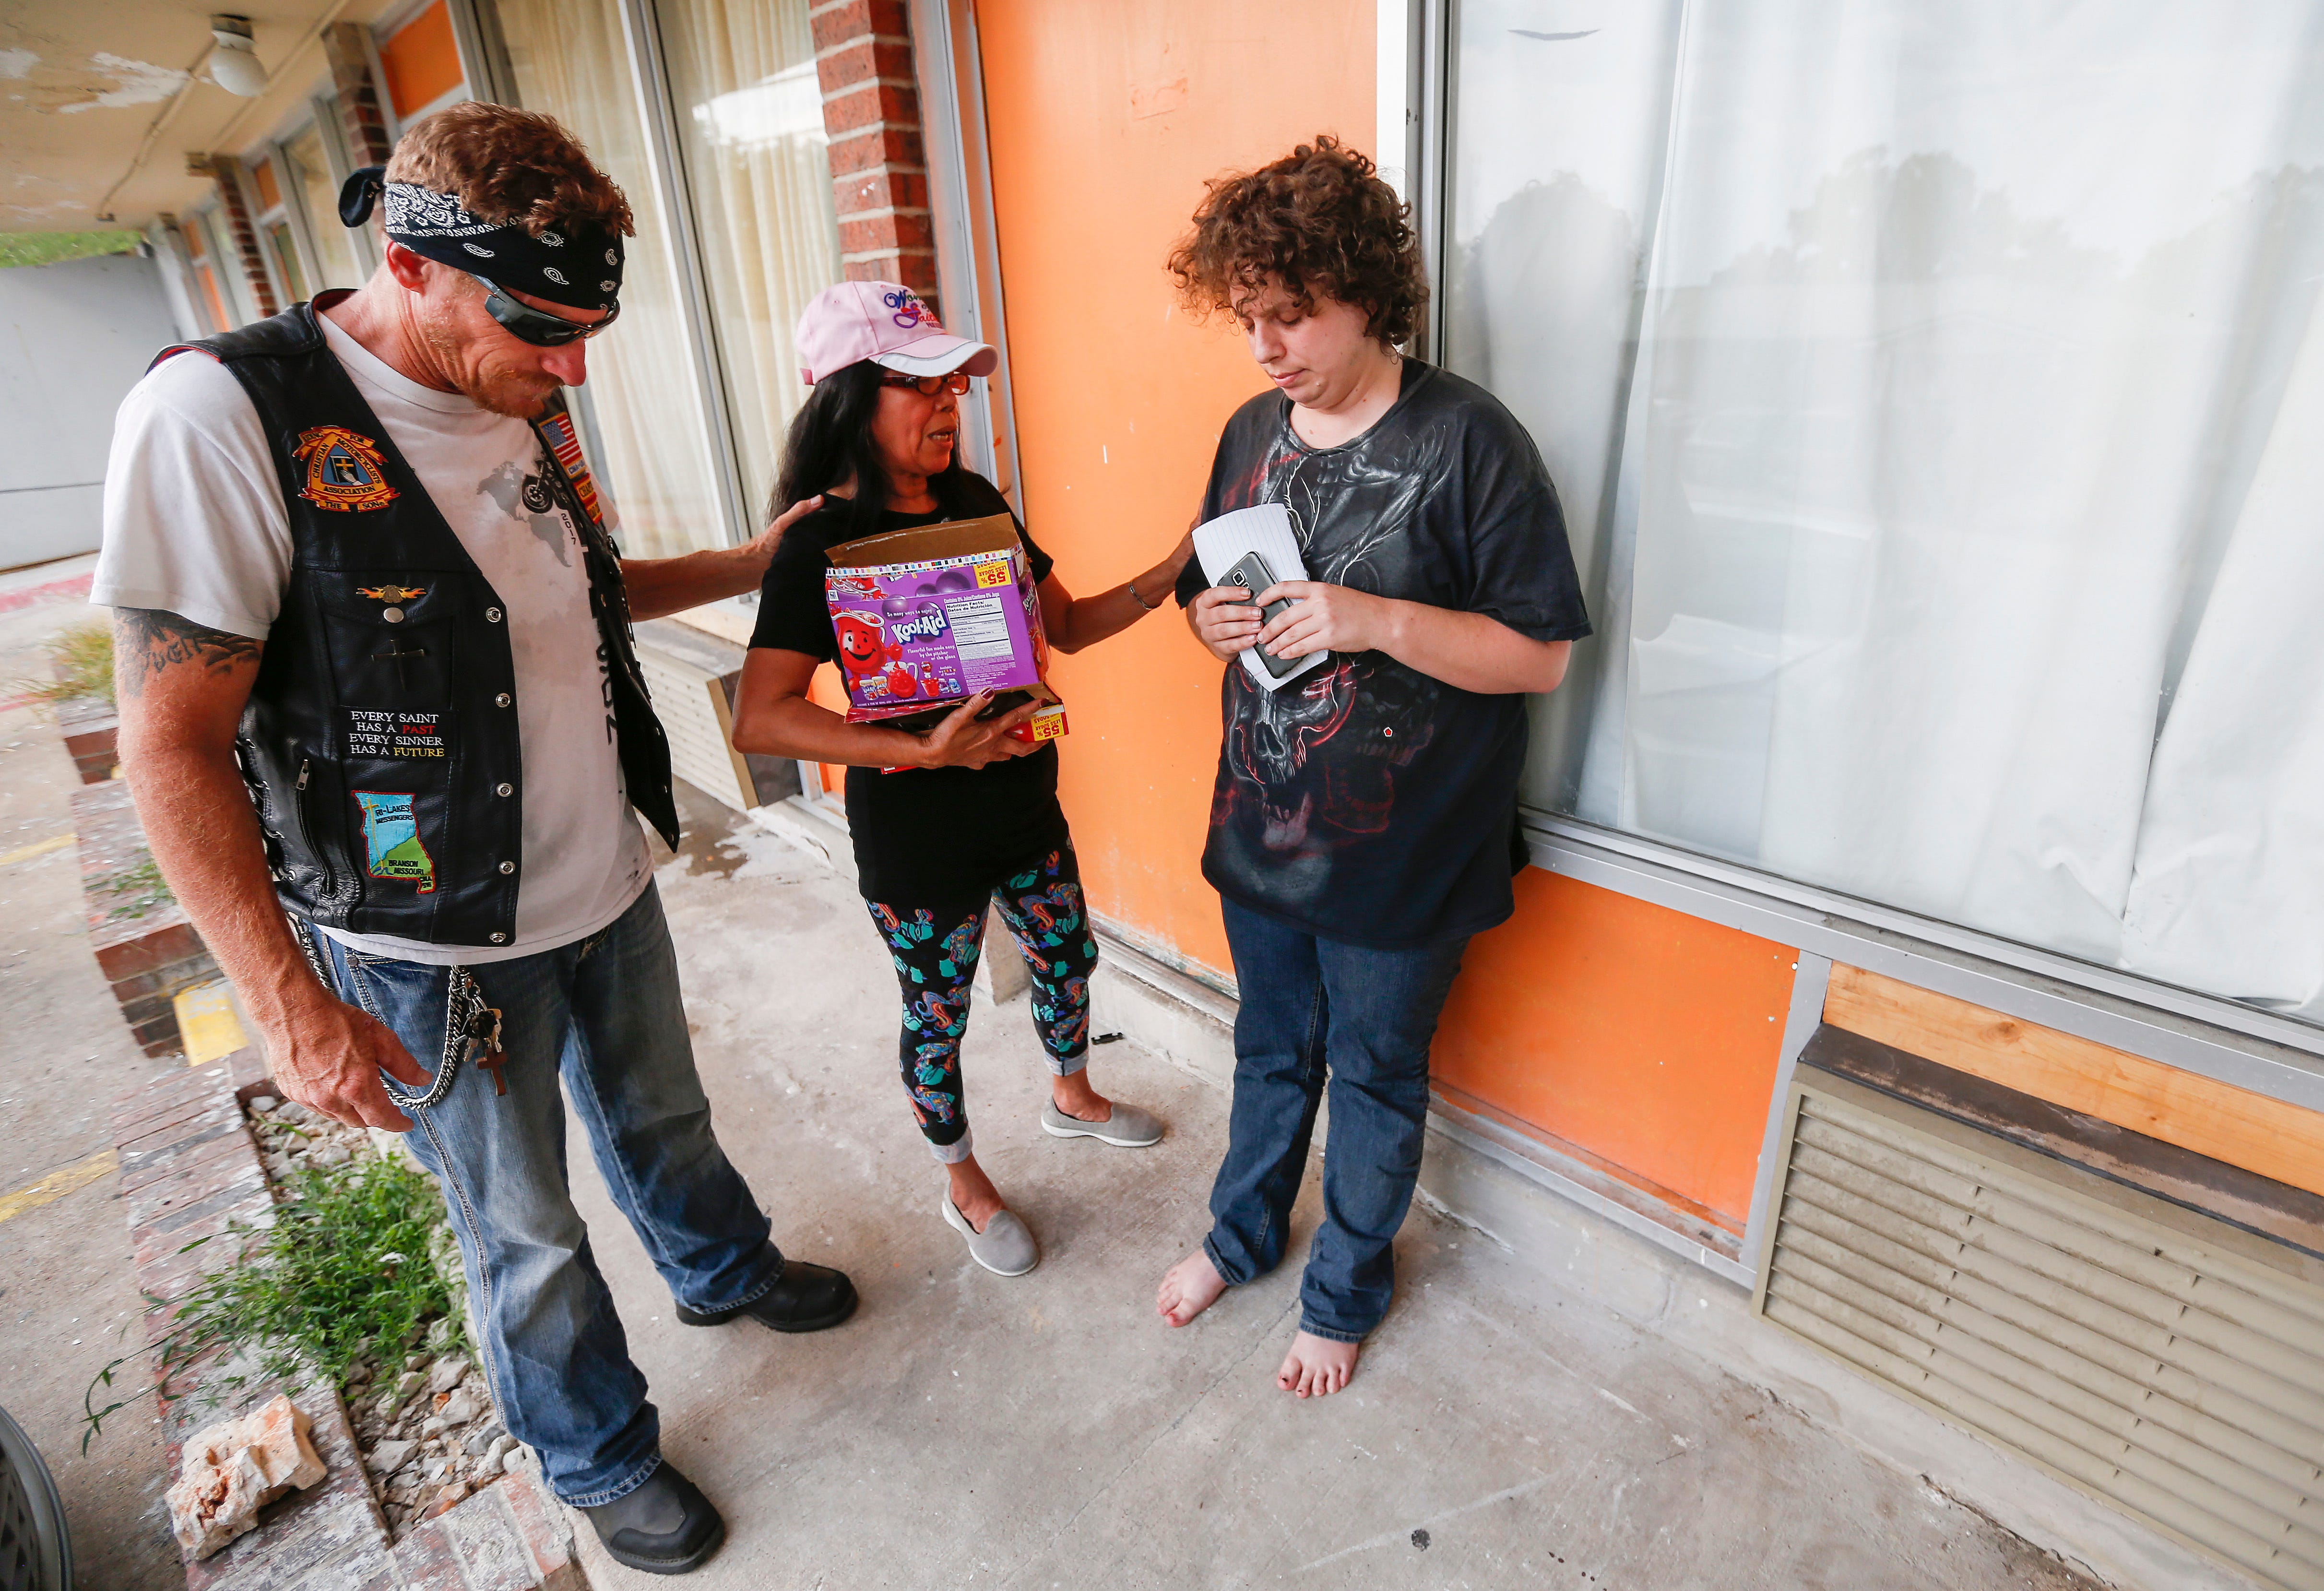 Rick Diamond and Estrella Wilson, volunteers with Jesus Was Homeless, pray with Ally Brown, right, after delivering meals for her family at the Branson Plaza on Thursday, July 5, 2018. Jesus Was Homeless volunteers deliver meals to residents in Branson's extended stay hotels every Thursday.